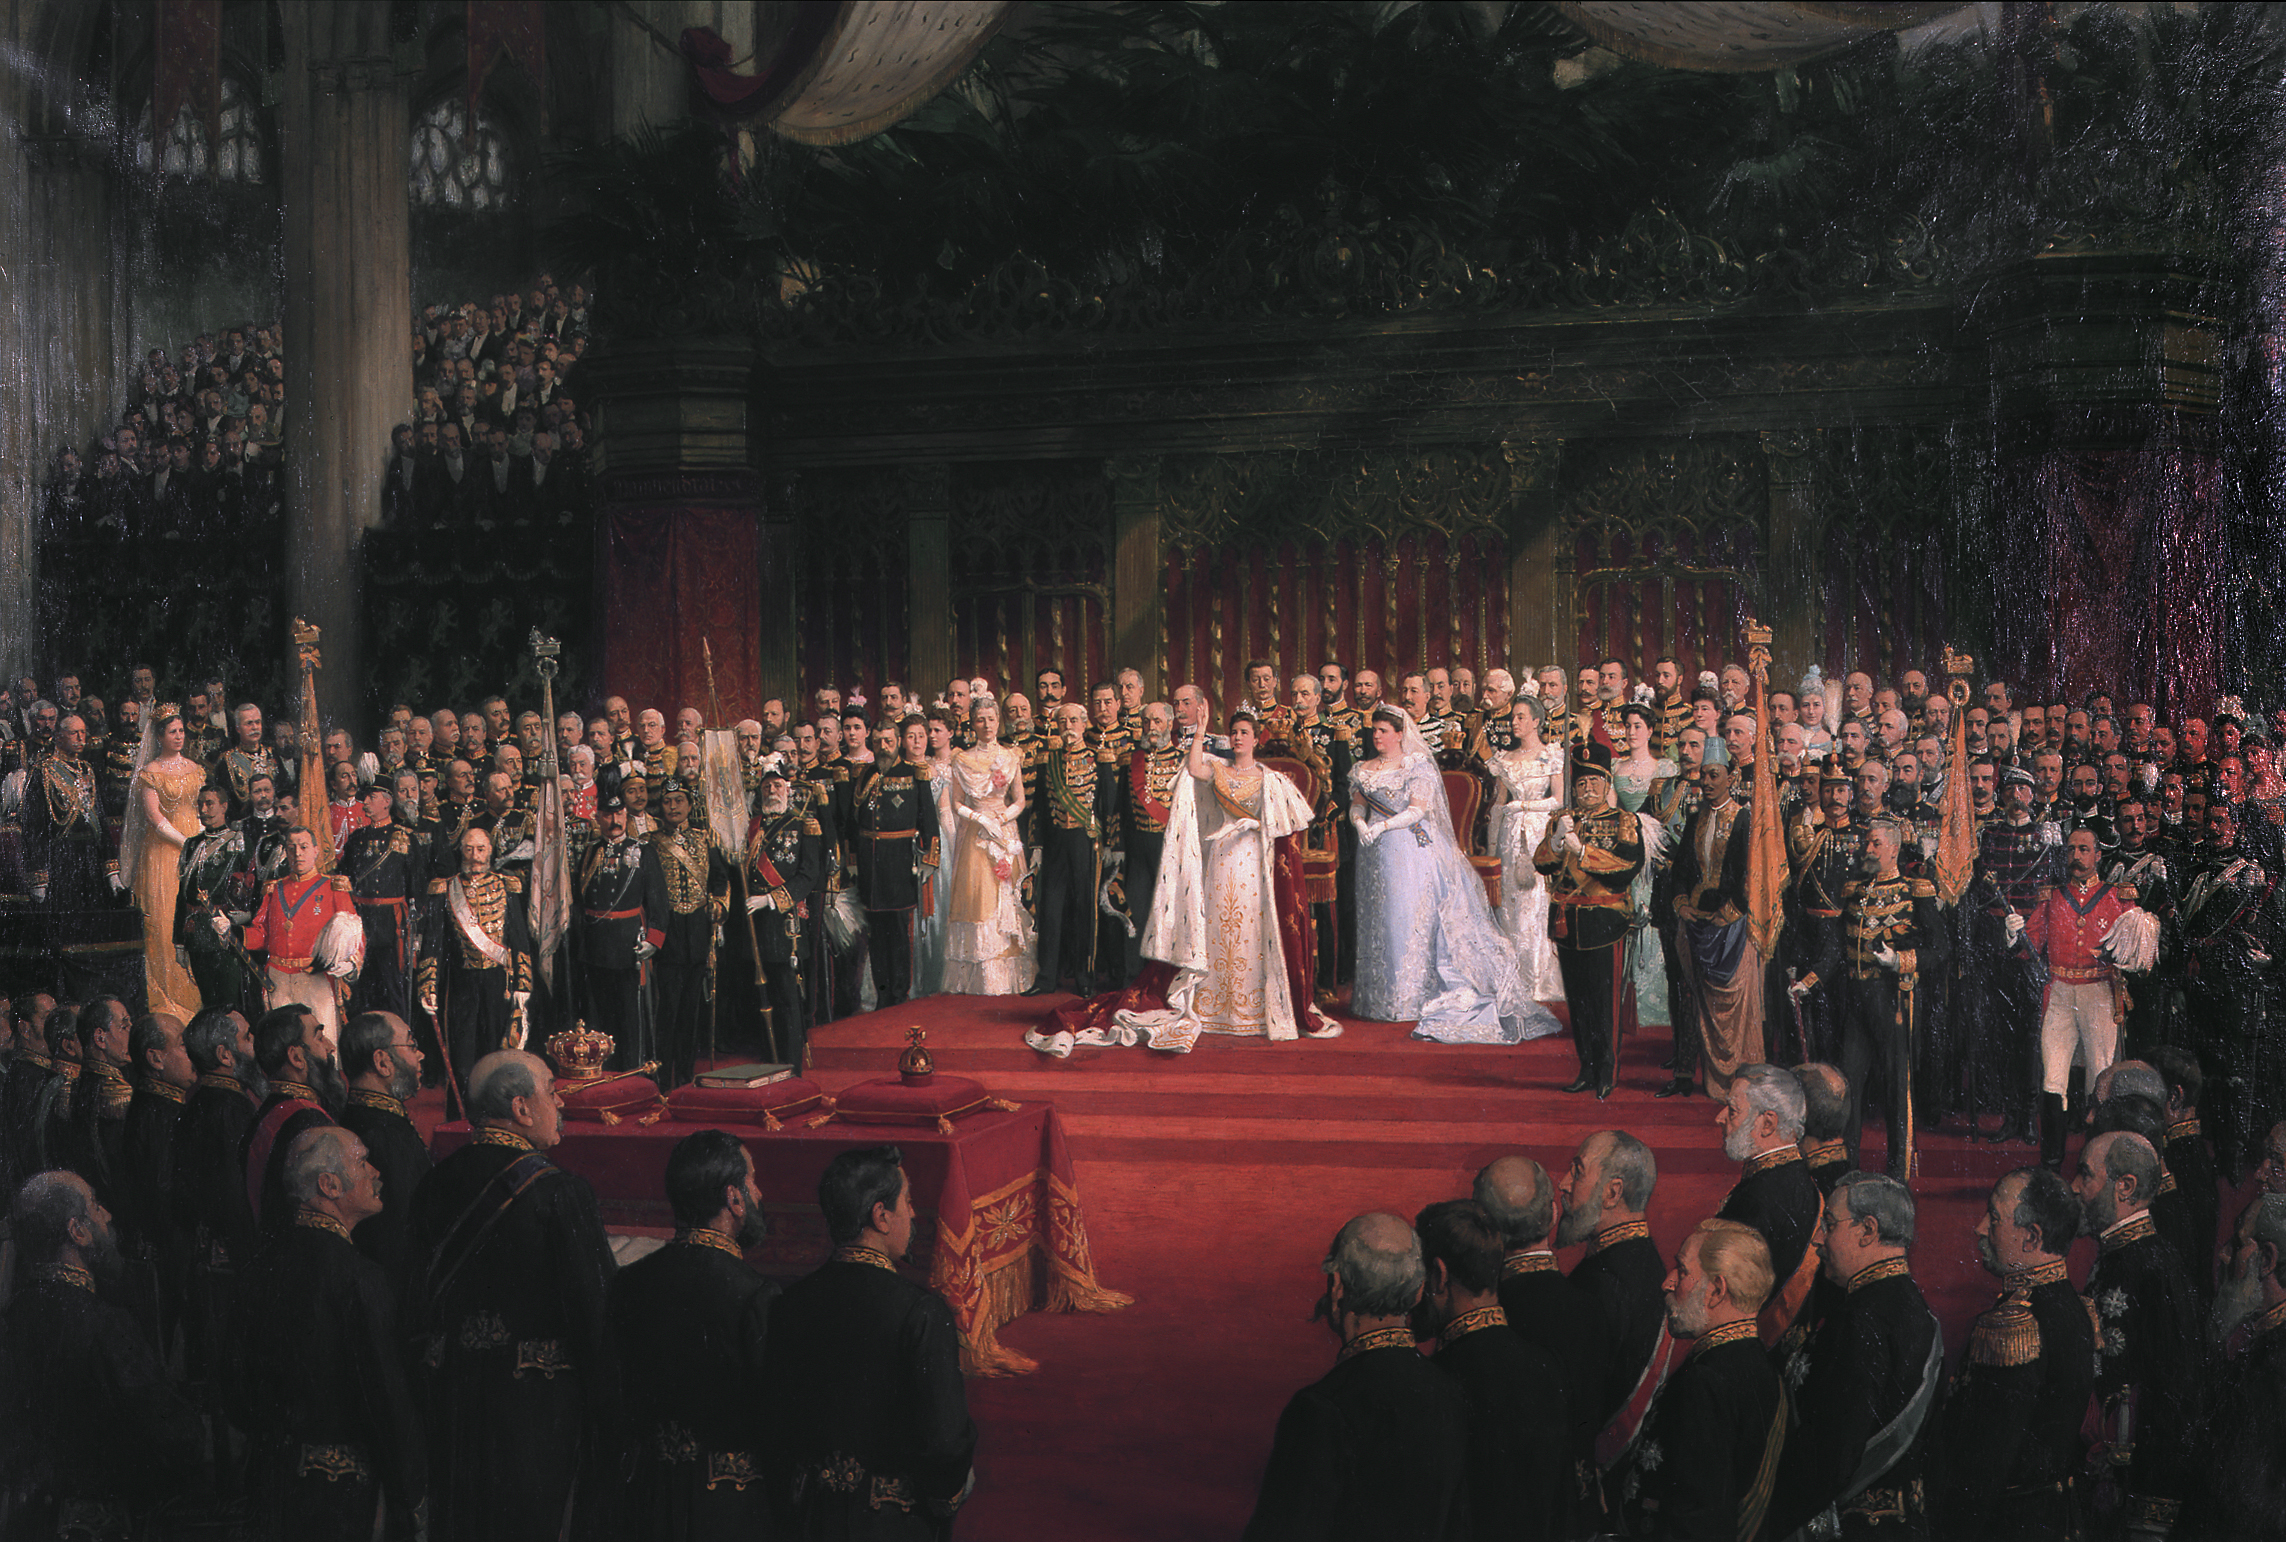 The inauguration of Queen Wilhelmina, by Nicolaas van der Waay